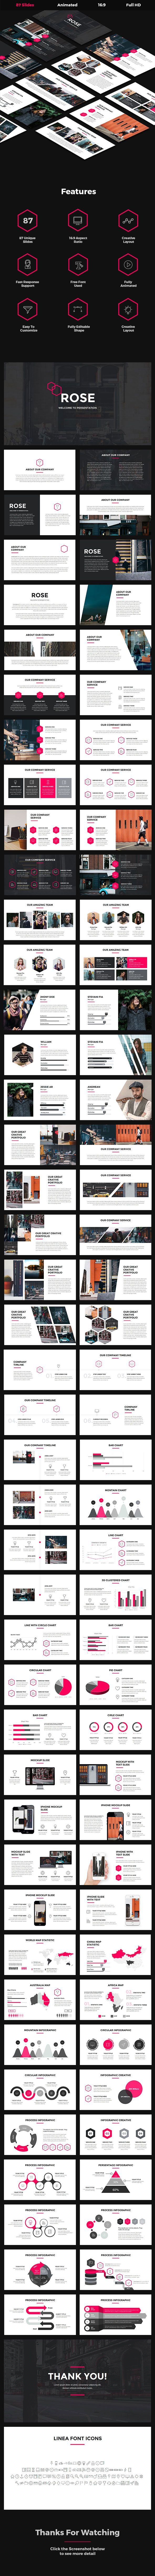 Rose - Google Slides Template | Creative powerpoint, Template and ...